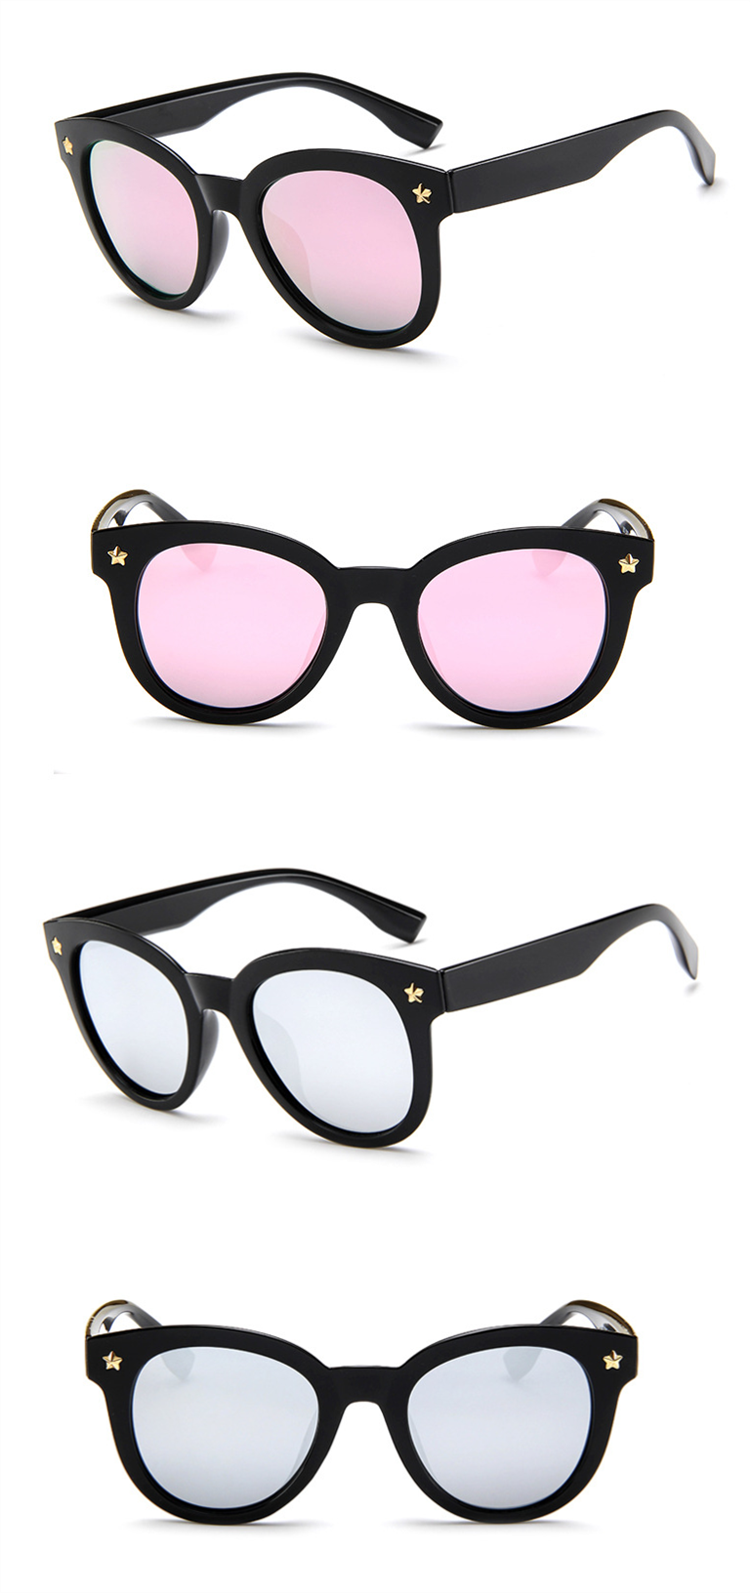 2019 New Style Faconnable Innovative Eyewear Good AC Lens PC  Metal Square Frame Flexible  Custom Women  Fashion Sunglasses